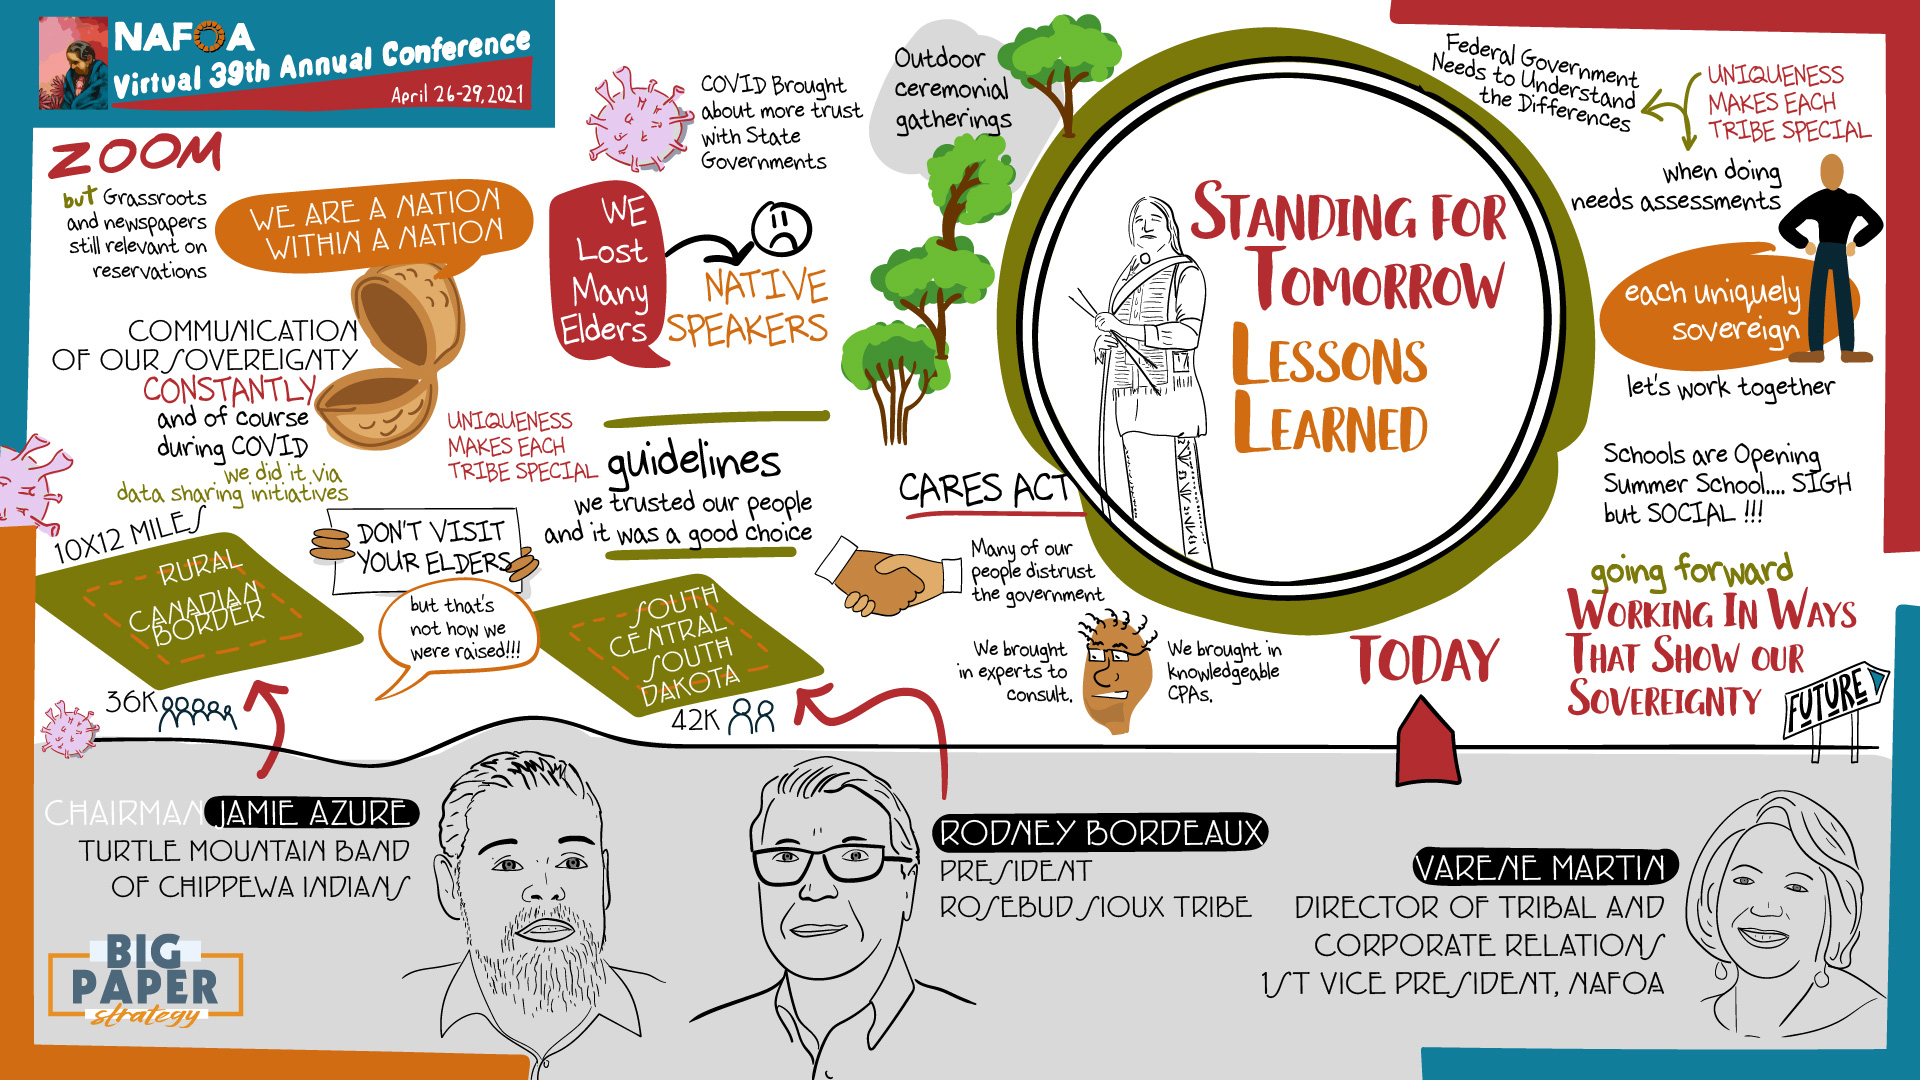 Standing for Tomorrow: Reflecting on Our Lessons Learned